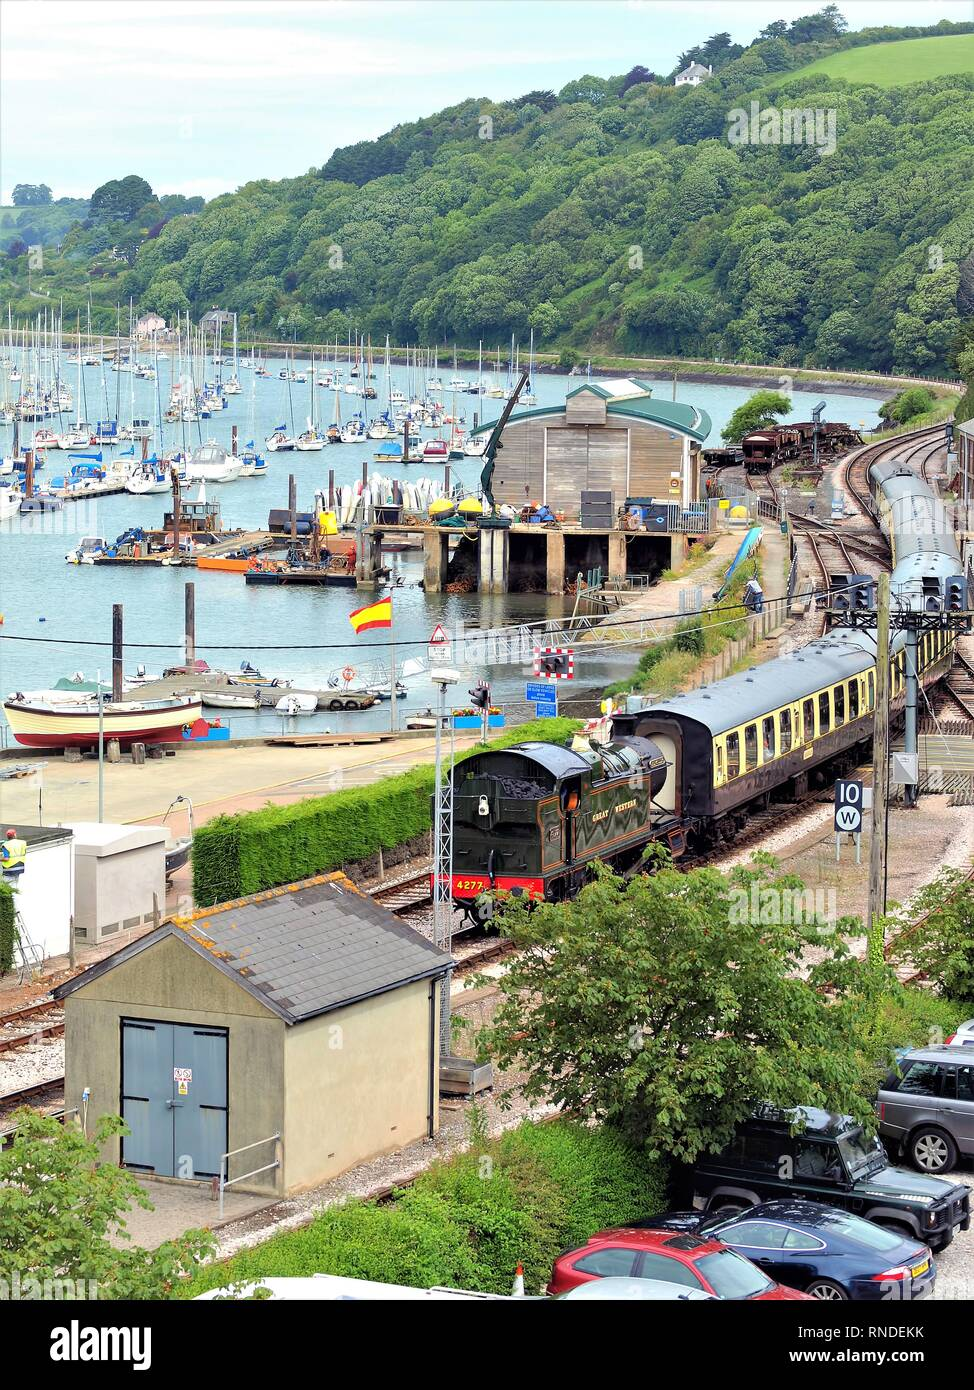 Kingswear, Devon, UK. June 17, 2009. The steam train arriving at Kingswear station from Paignton running by the side of the river Dart at Devon, Engla Stock Photo